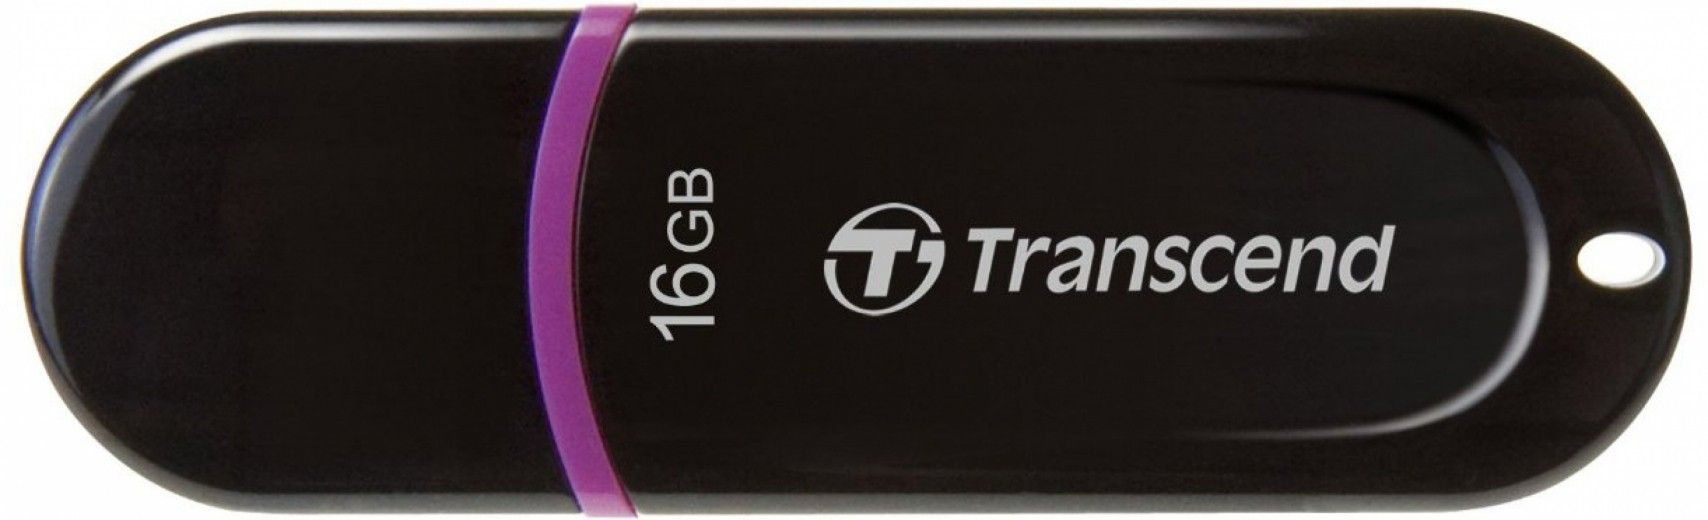 USB флеш накопитель Transcend JetFlash 300 16GB Black (TS16GJF300)